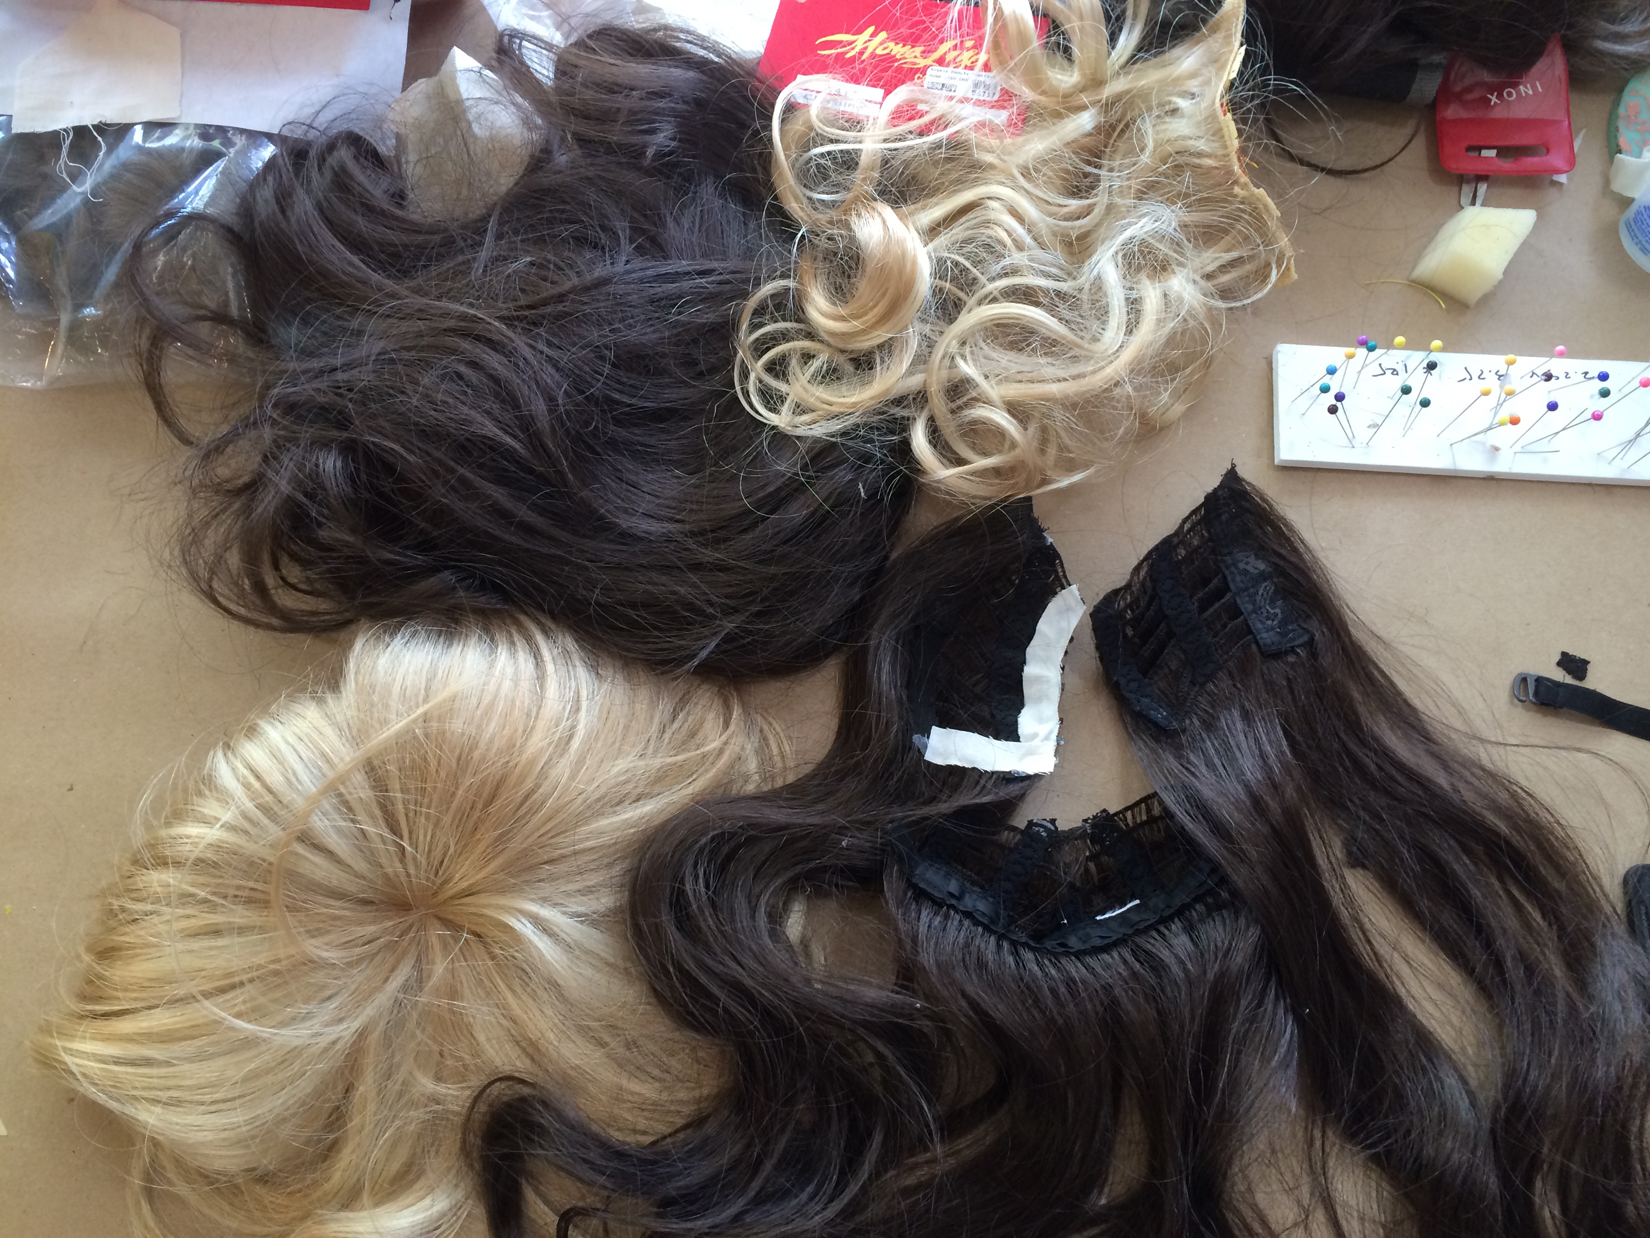 Puppet wigs